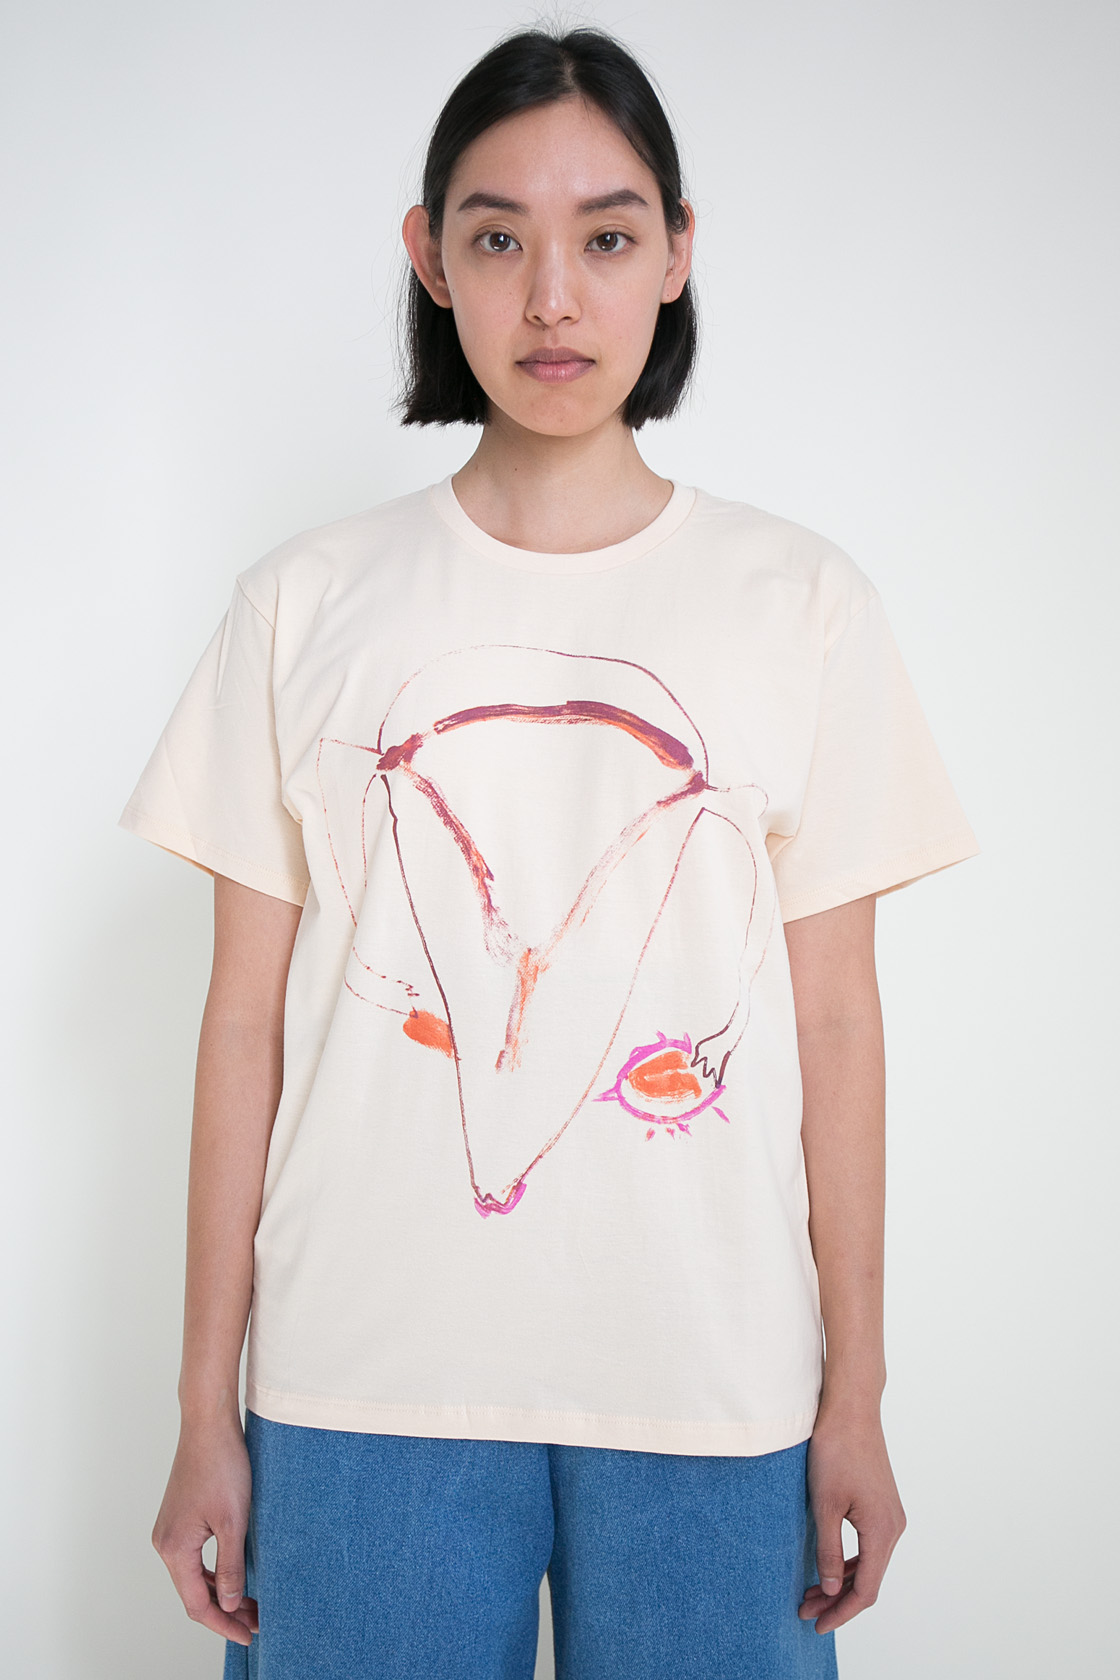 Ovaries T Two  XS S M L  $75